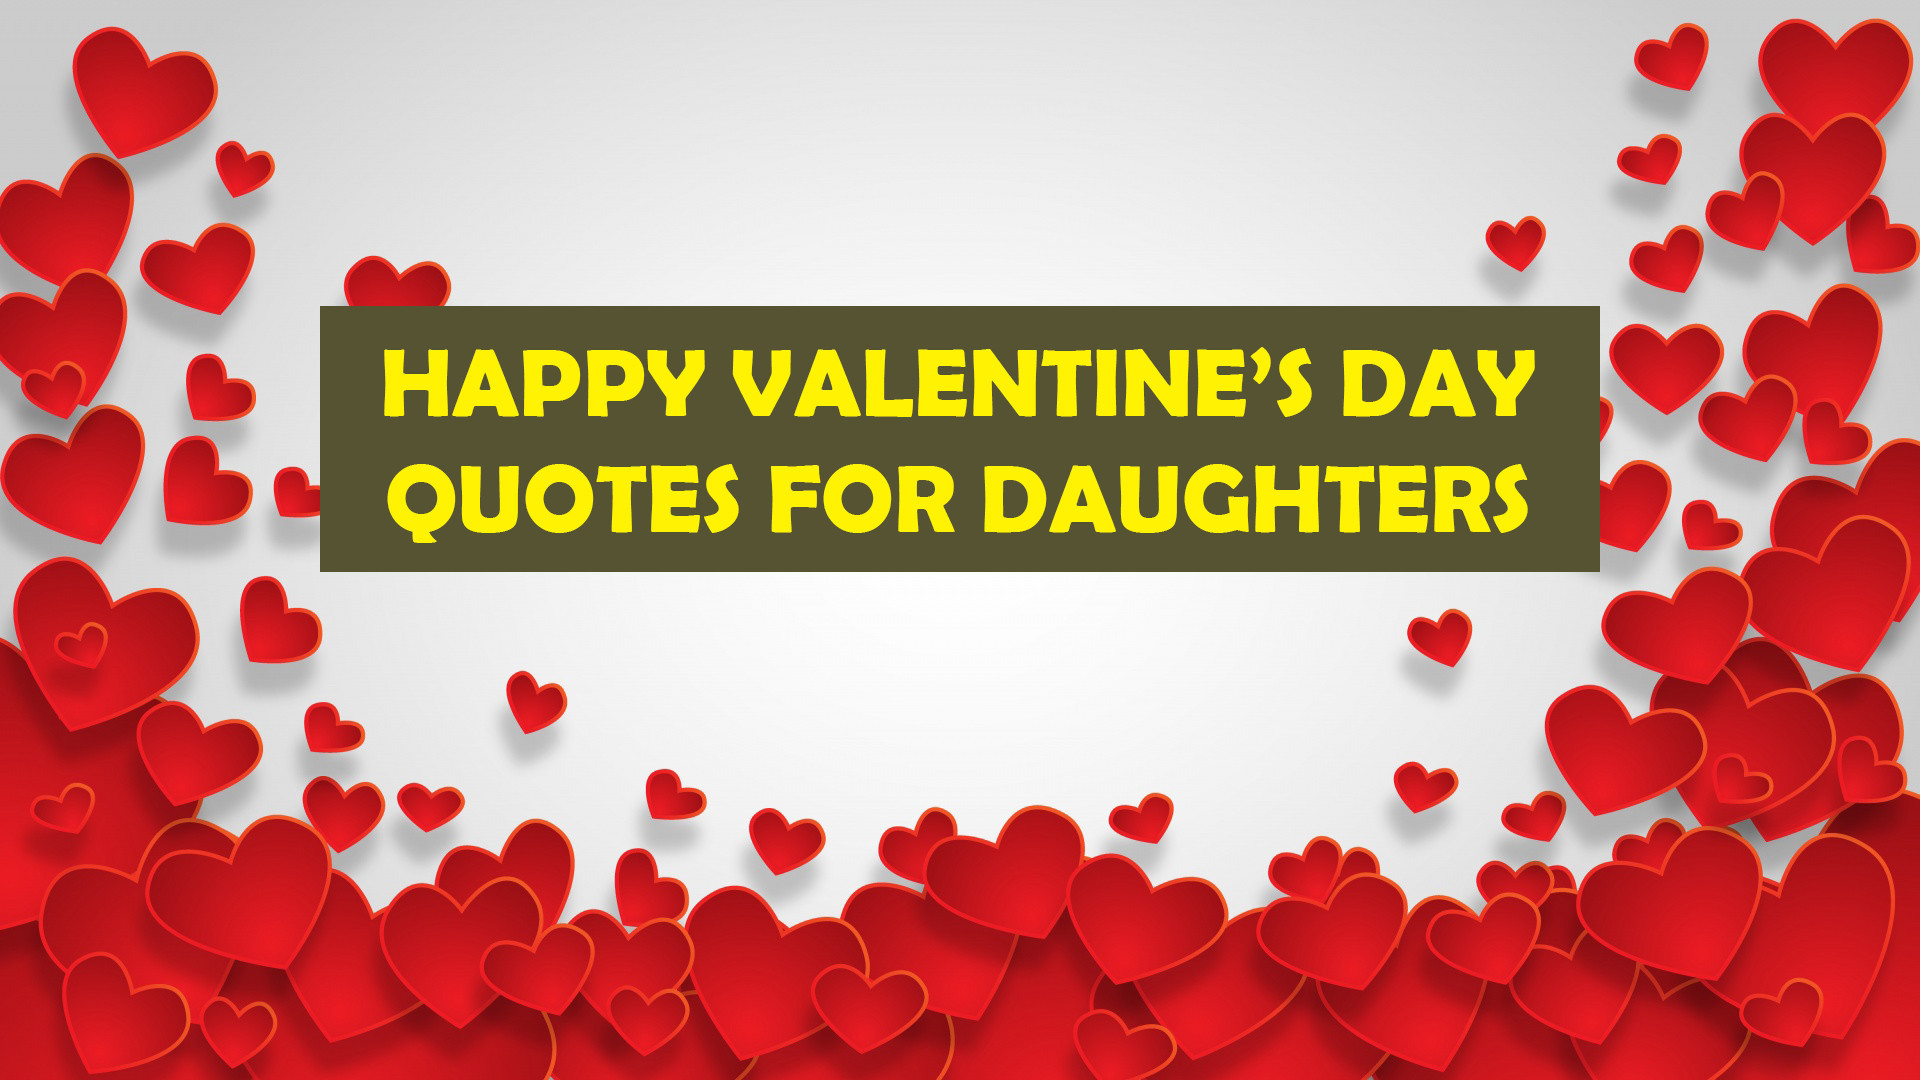 Valentines Day Quotes For Daughters  Happy Valentine s Day Quotes Wishes for Daughter Happy